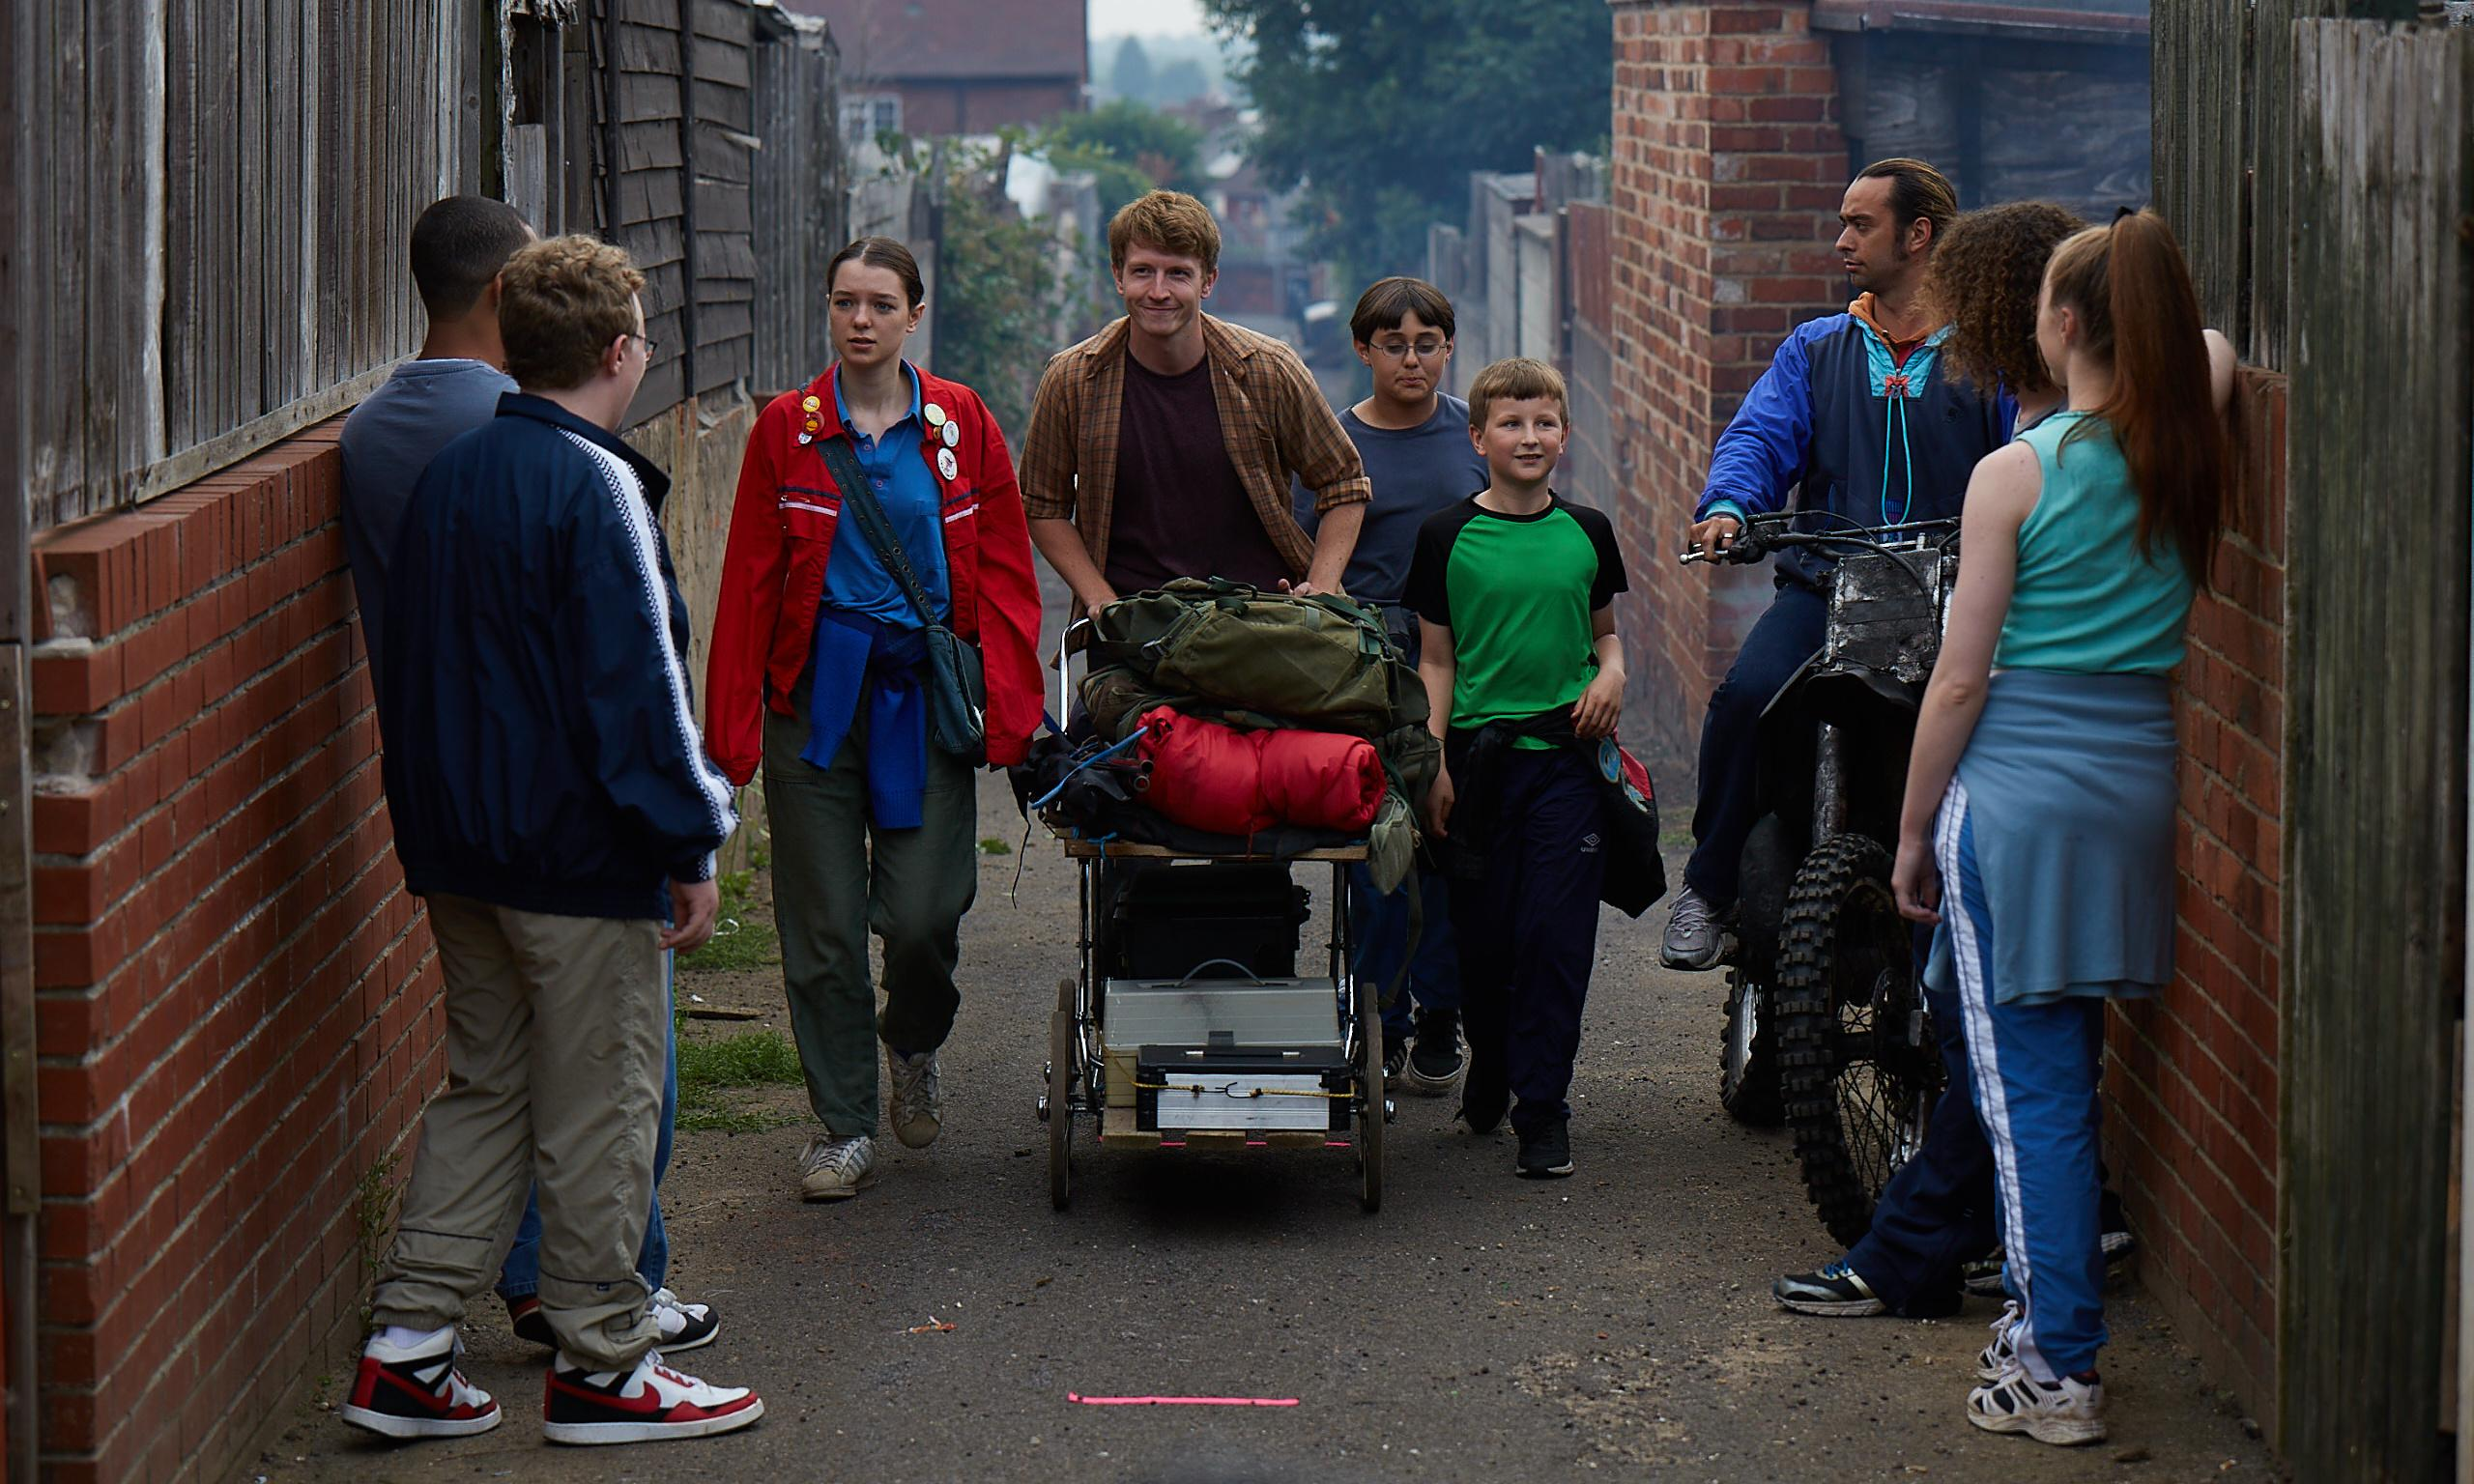 Pond Life review – affectionate coming-of-age comedy